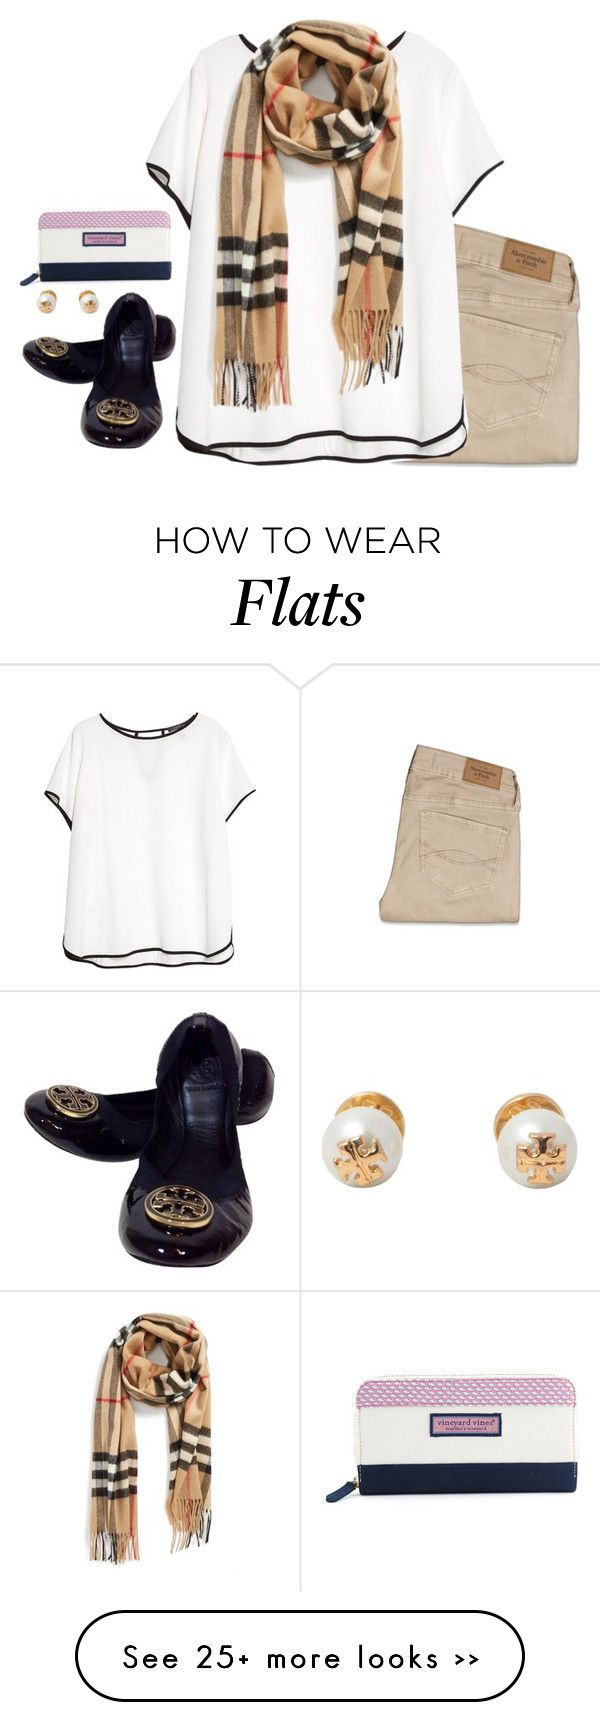 """free FALLIN"" by conleighh on Polyvore featuring Abercrombie & Fitch, Violeta by Mango, Tory Burch, Burberry and Vineyard Vines"